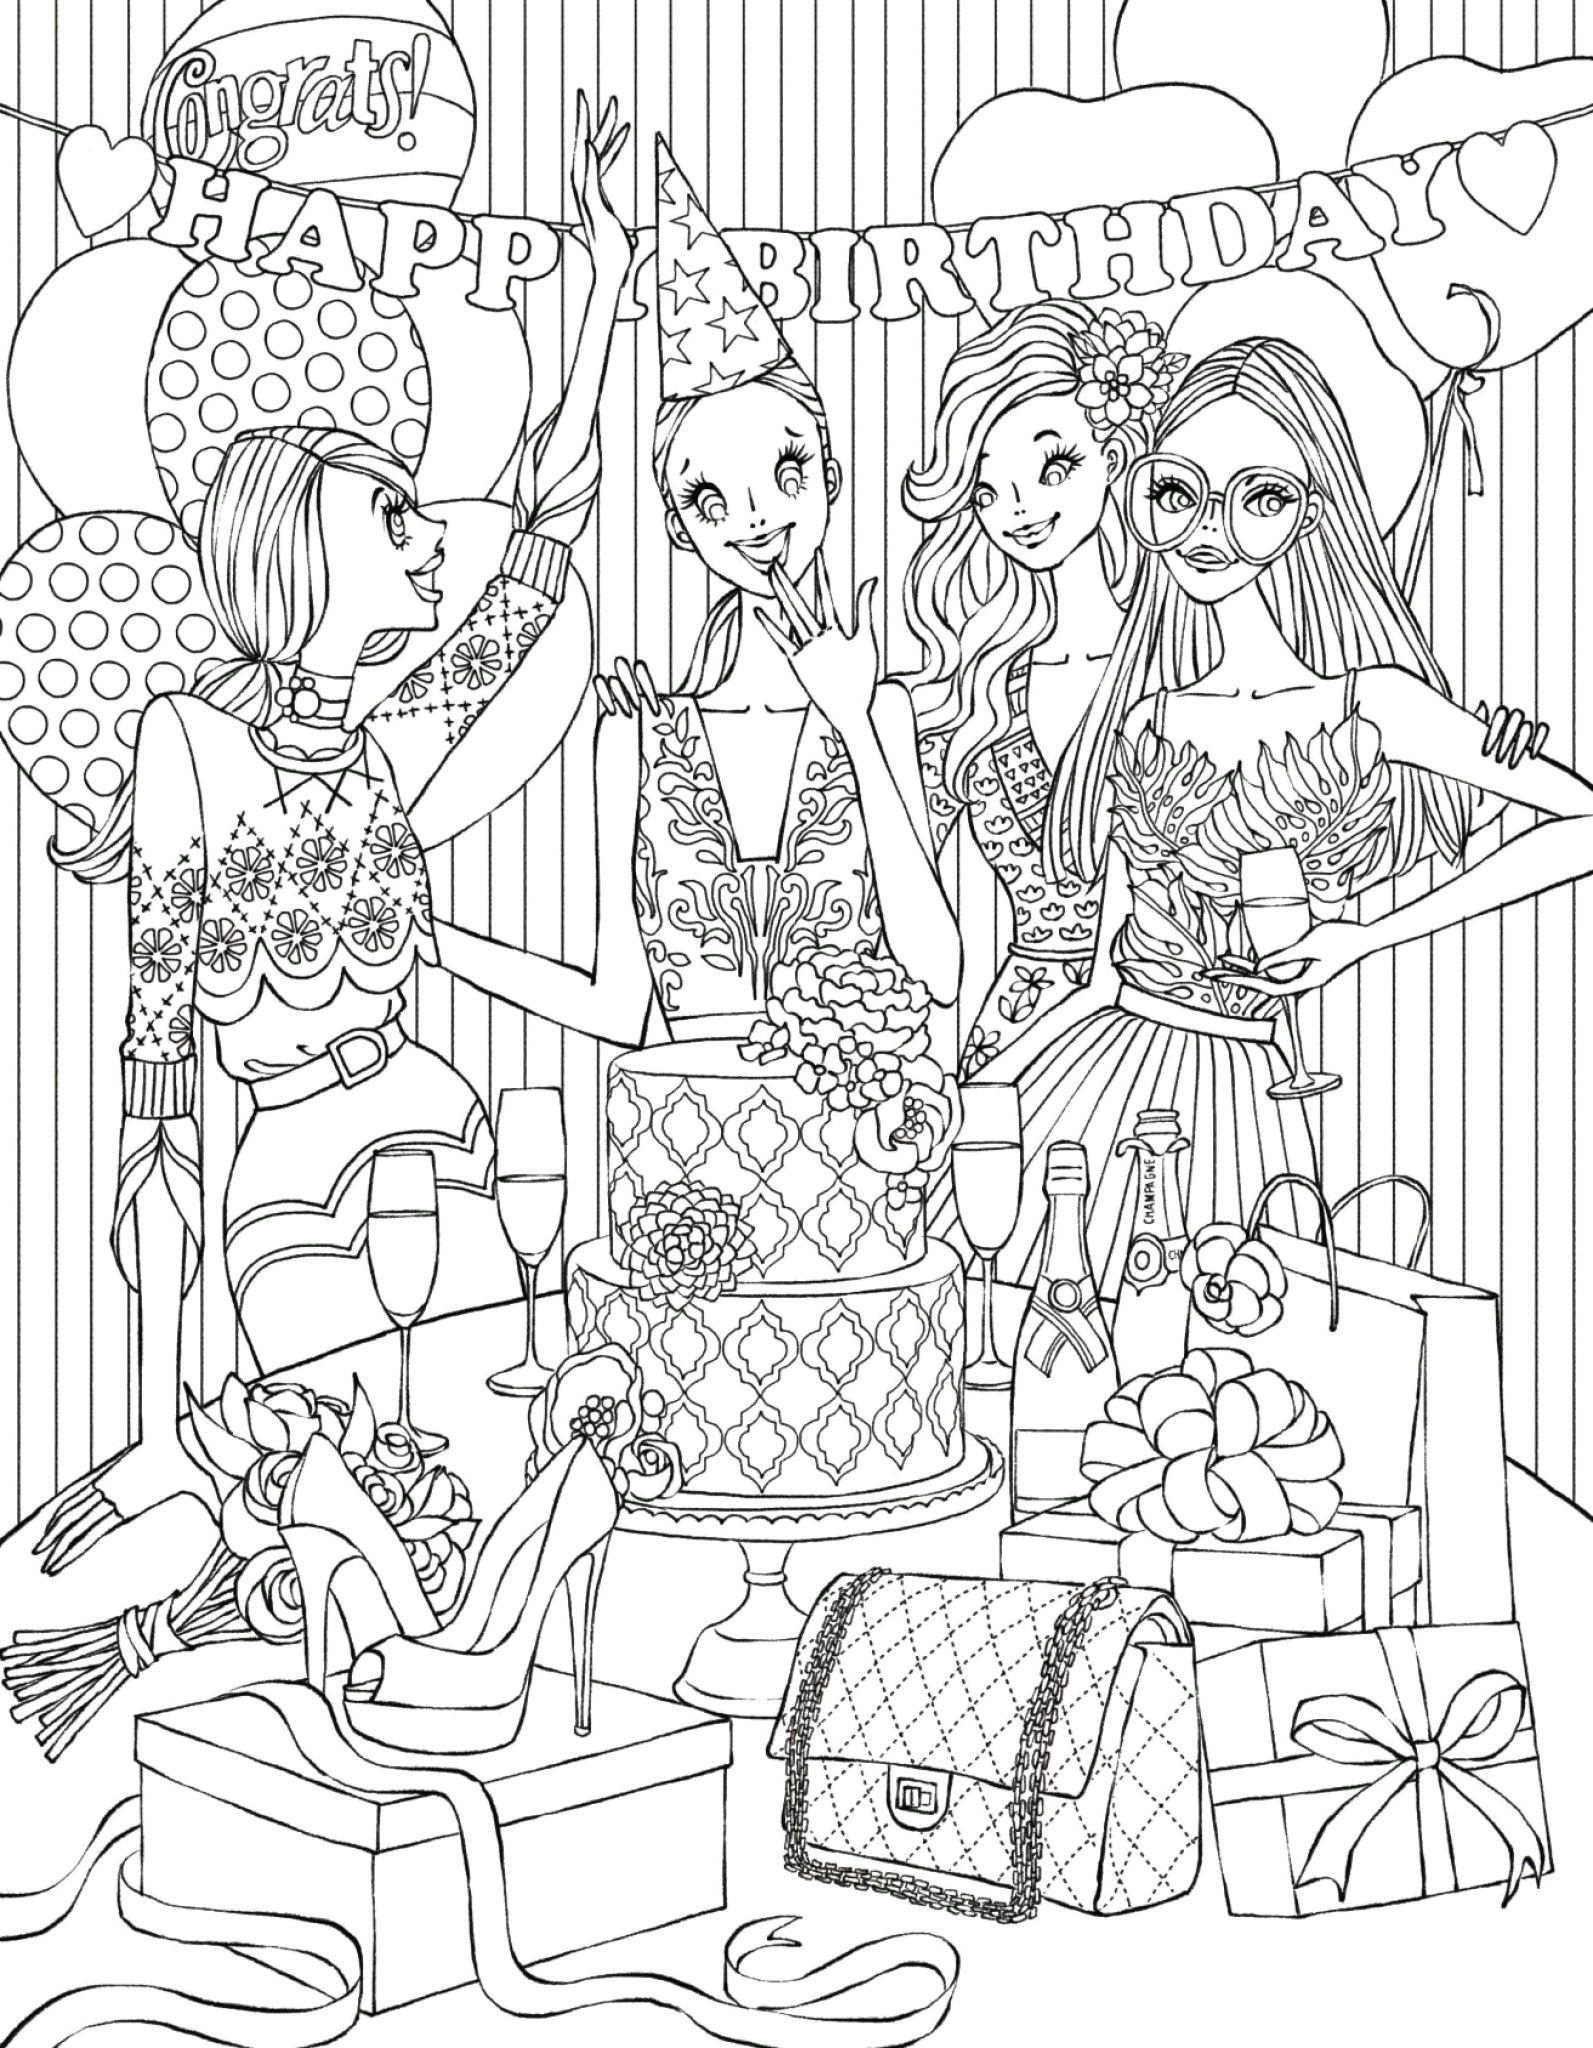 coloring pages printable for boys printable design coloring pages for kids best printable coloring book 0d